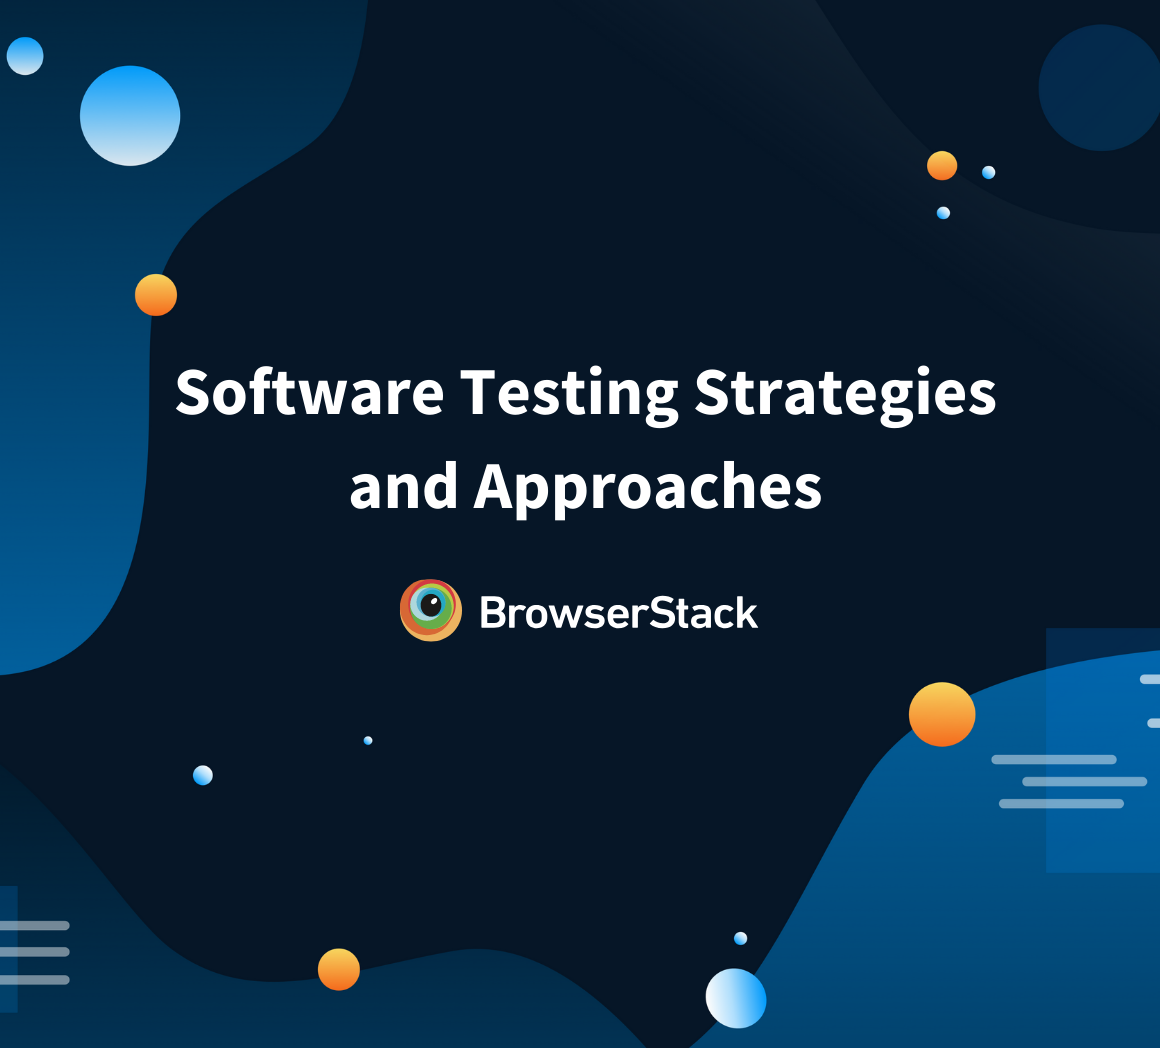 Software Testing Strategies and Approaches